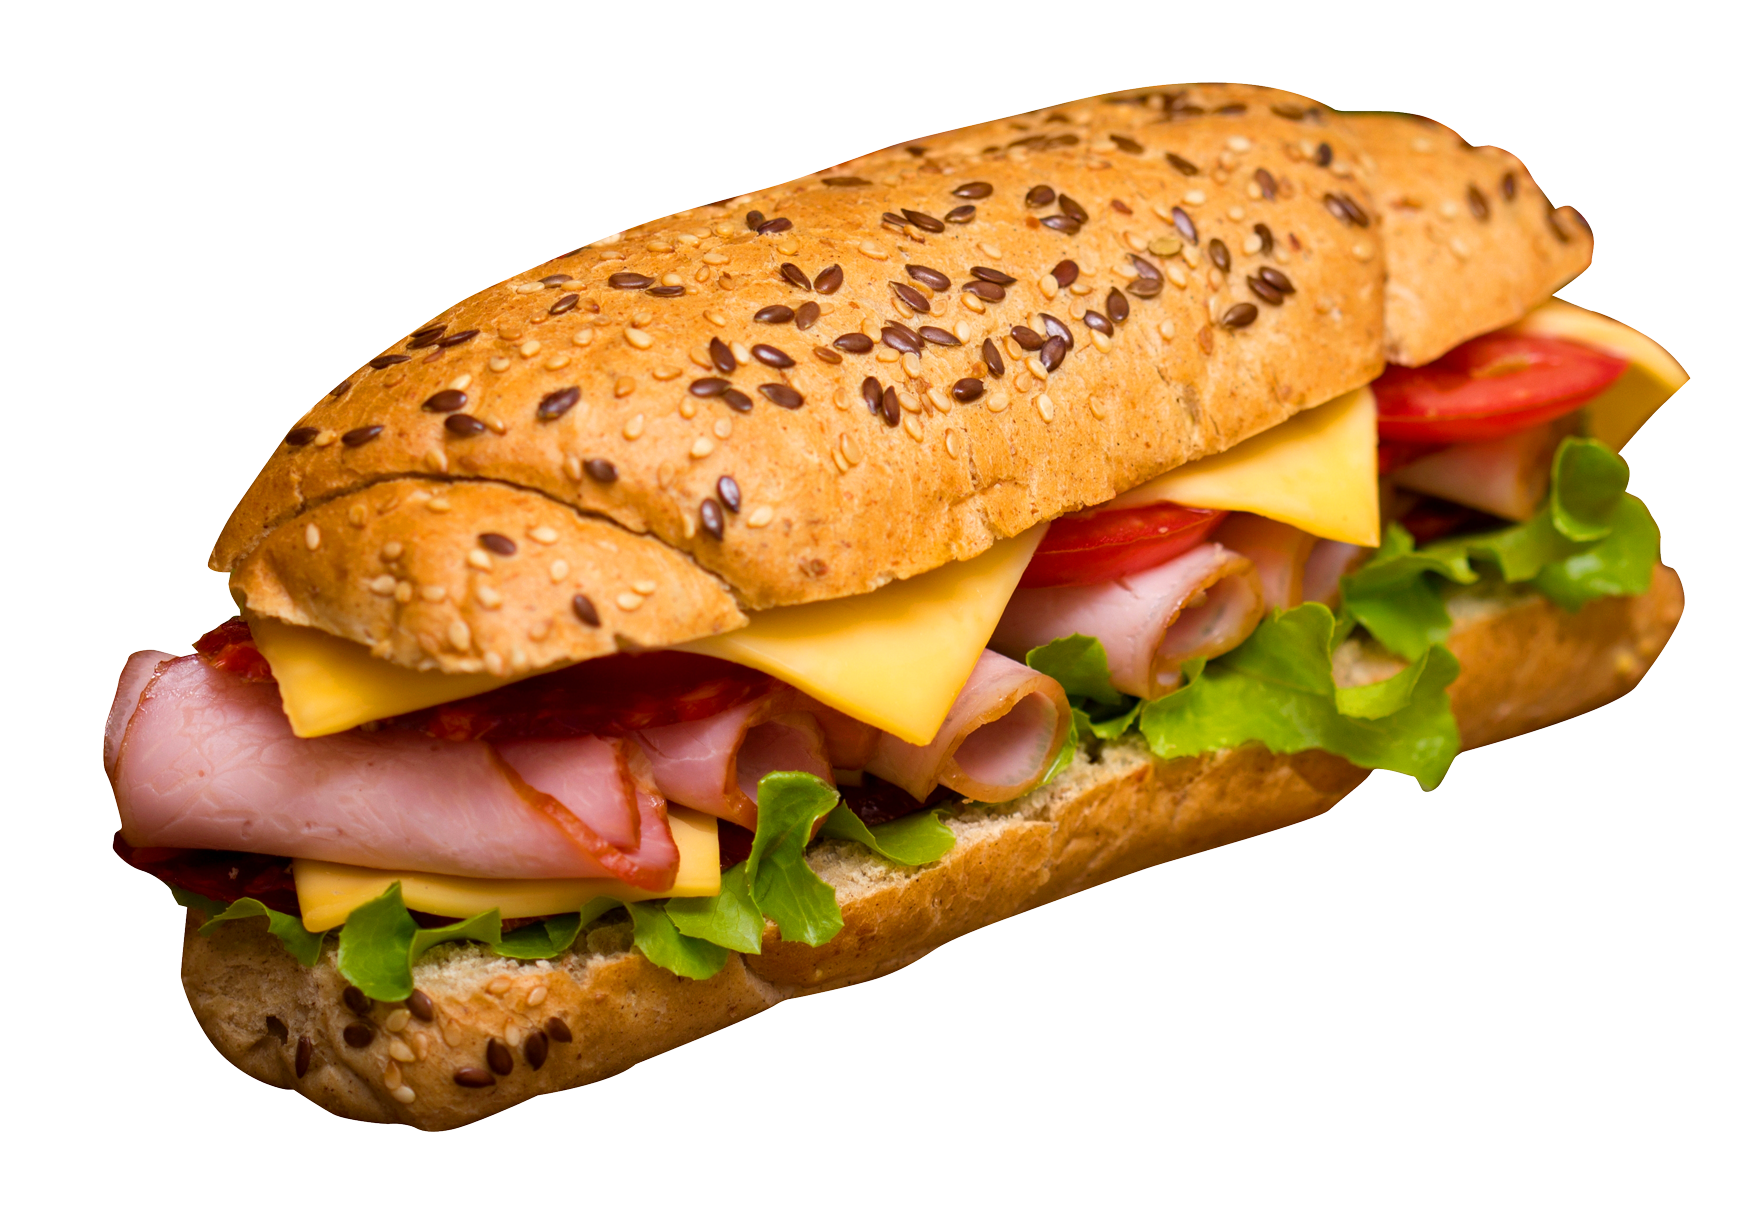 Sandwich Png Image Food Png Sandwiches Food And Drink